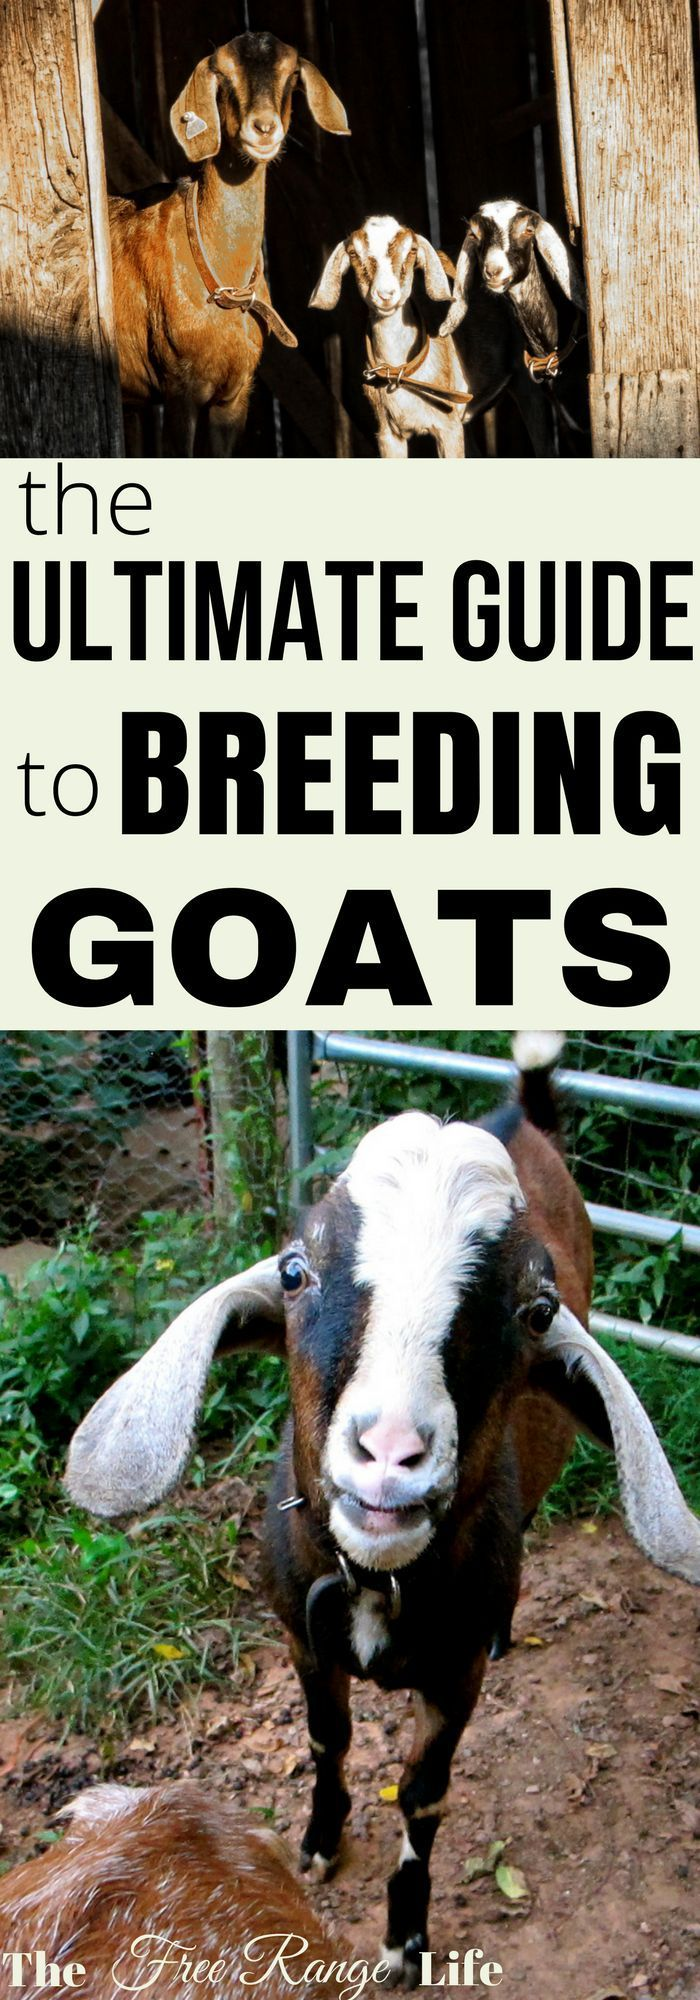 a guide to goats Goat farming in philippines: commercial goat farming is gradually gaining popularity due to its high demand and good economic prospects the commercial goat.